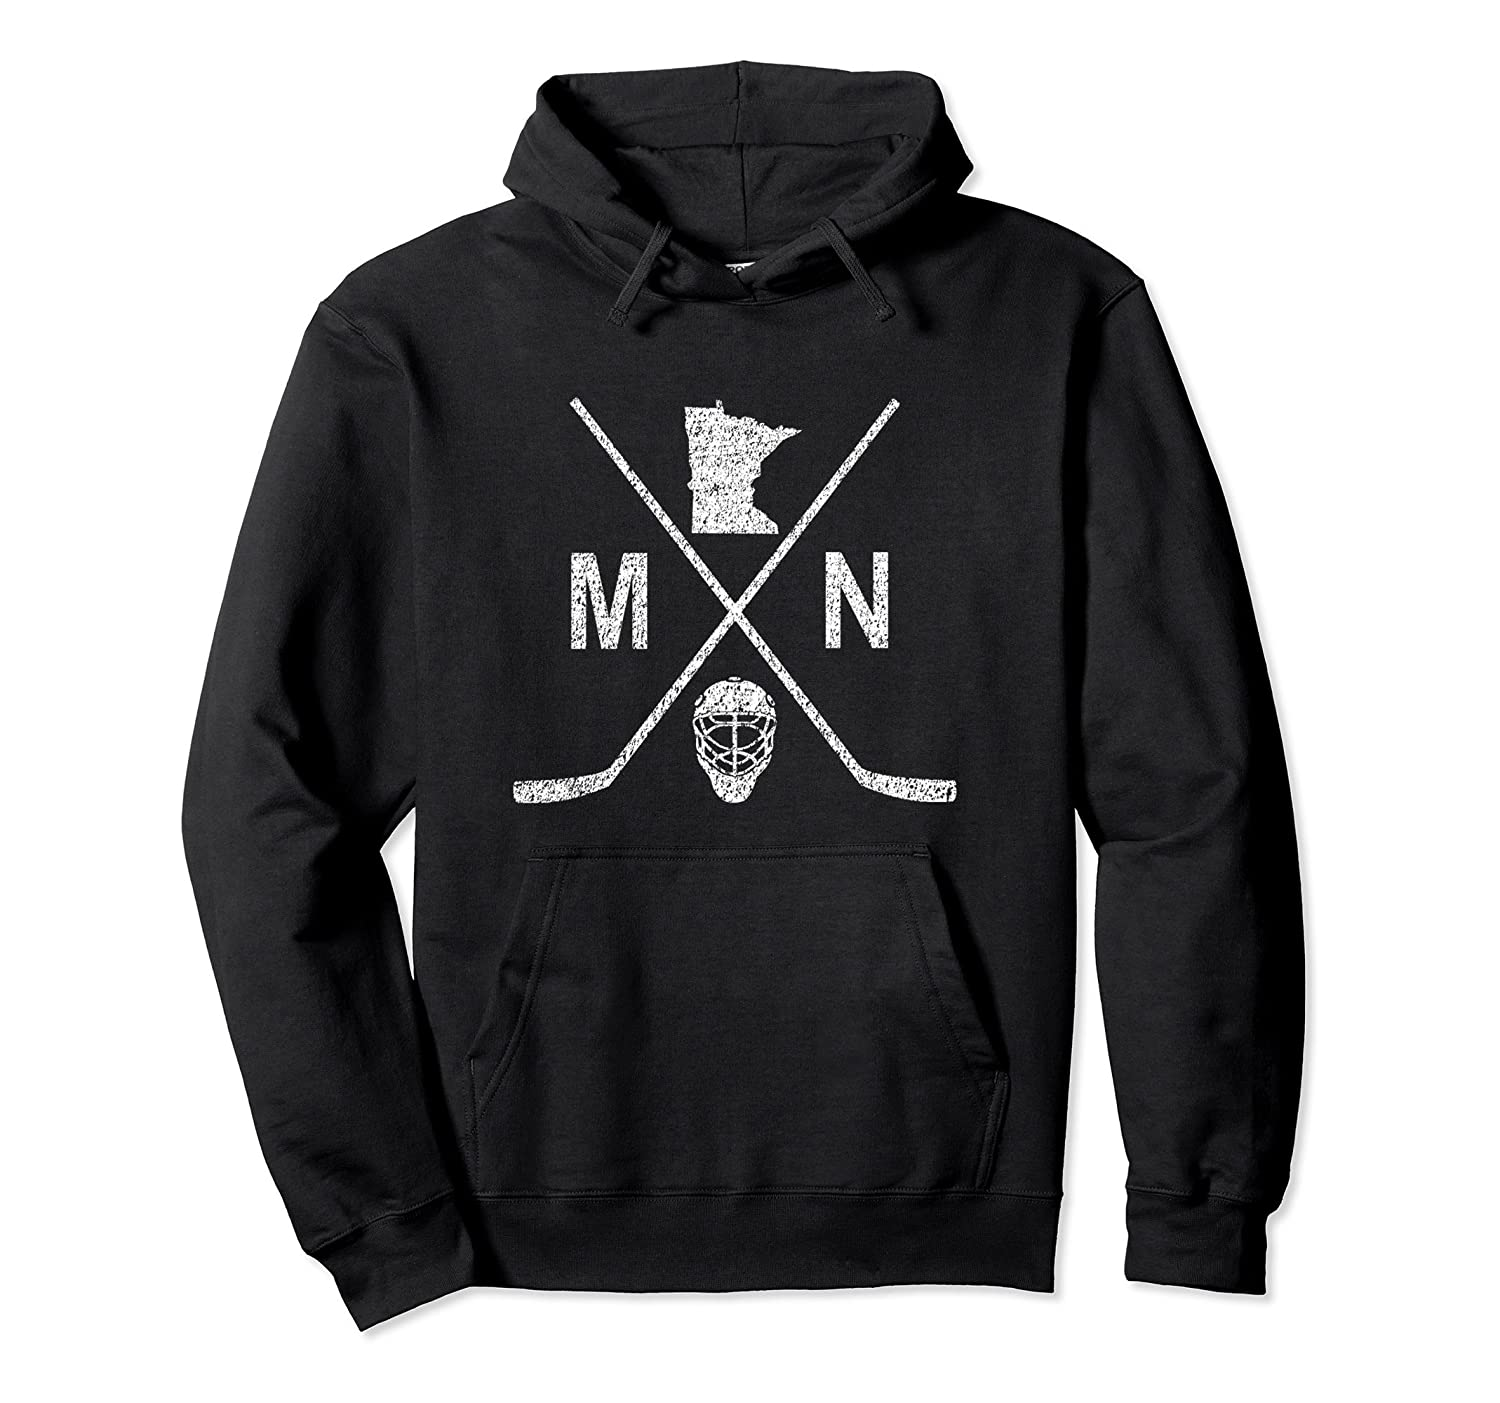 State of MN Hockey Sweatshirt | Vintage Look Hoodie